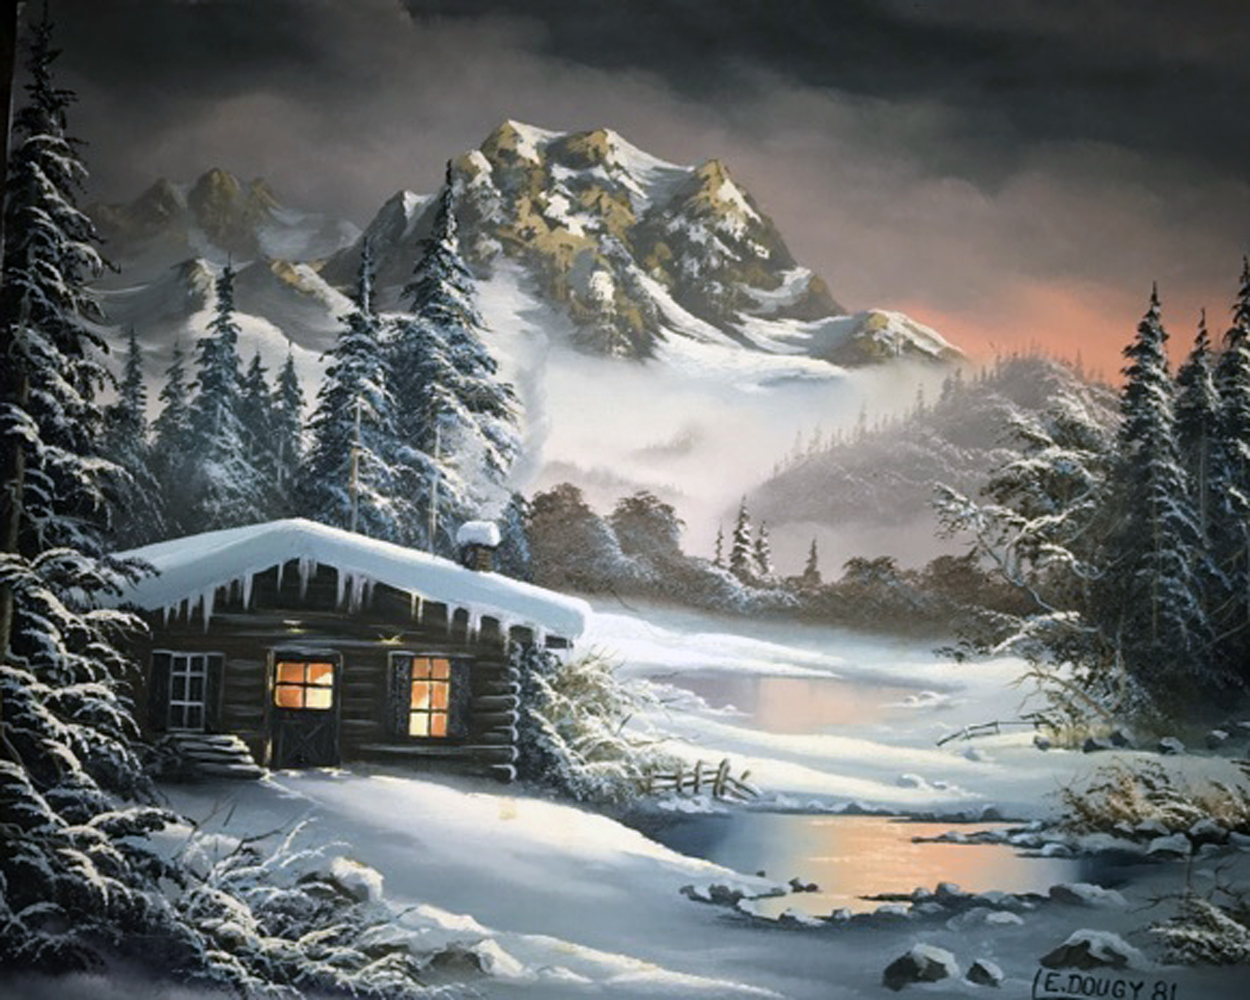 Mountain Cabin Dusk  1981 20x16